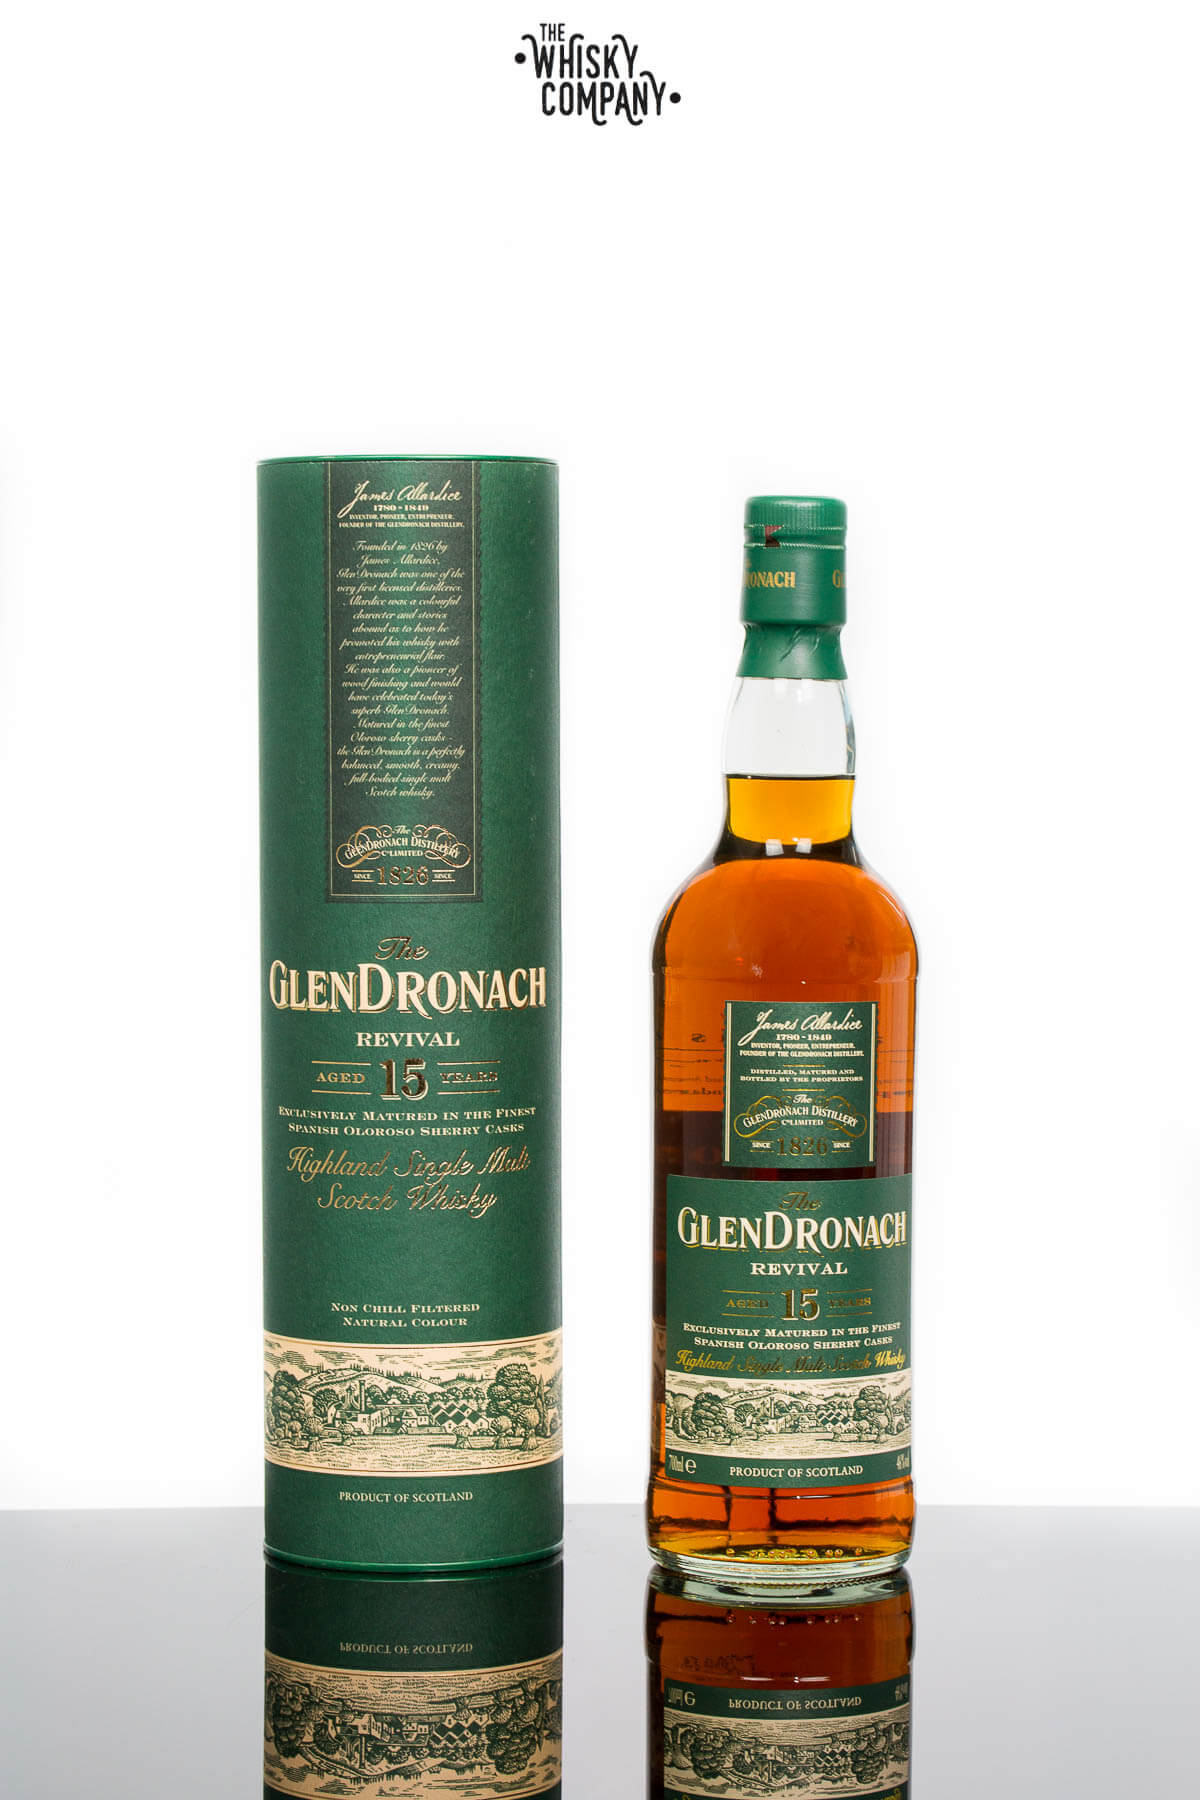 GlenDronach 15 Years Old Revival Highland Single Malt Scotch Whisky (700ml)